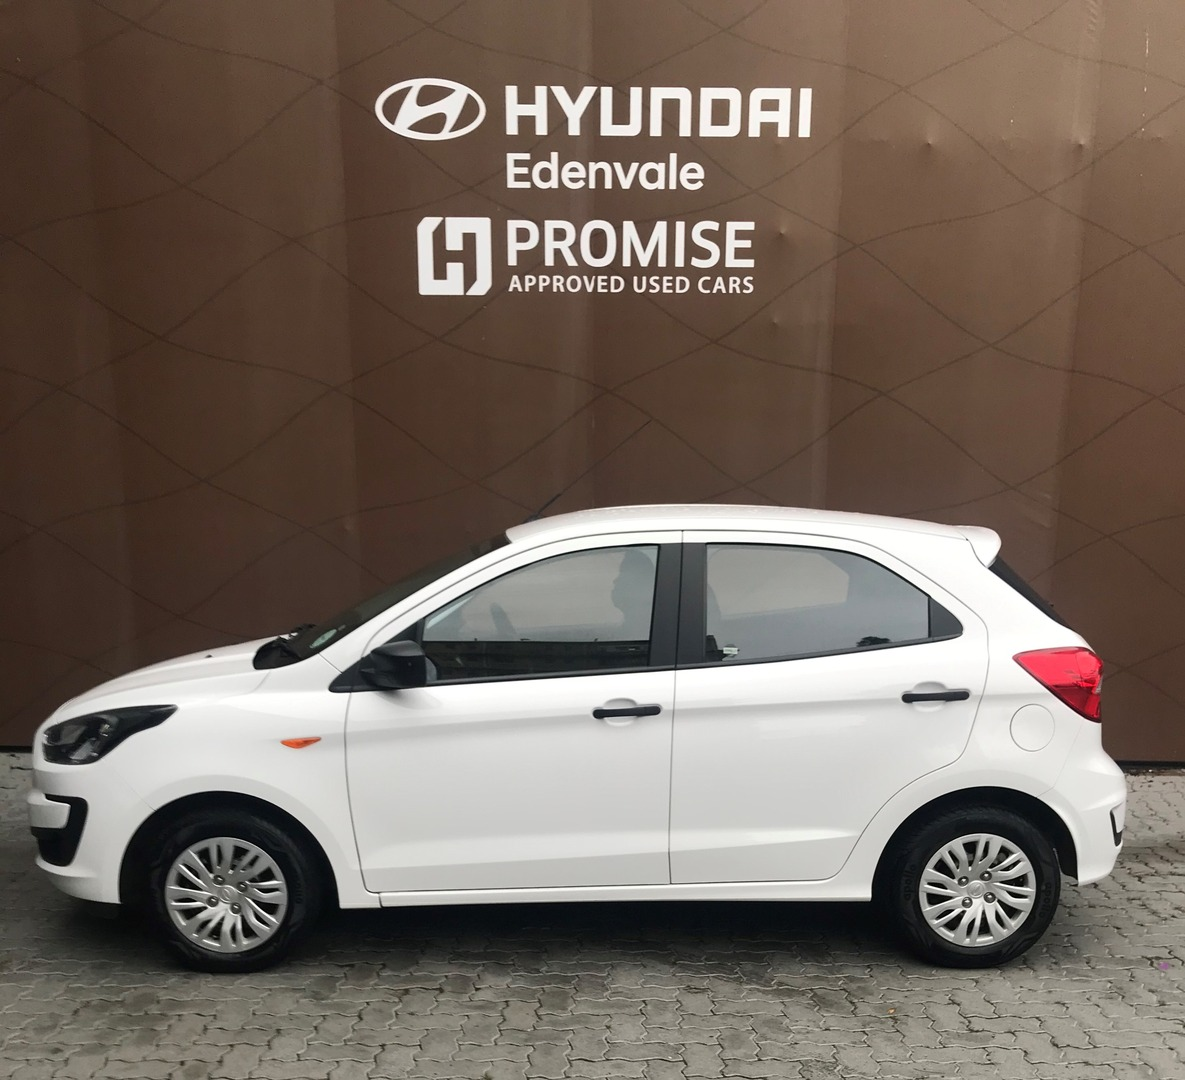 FORD 1.5Ti VCT AMBIENTE (5DR) Edenvale 1332463